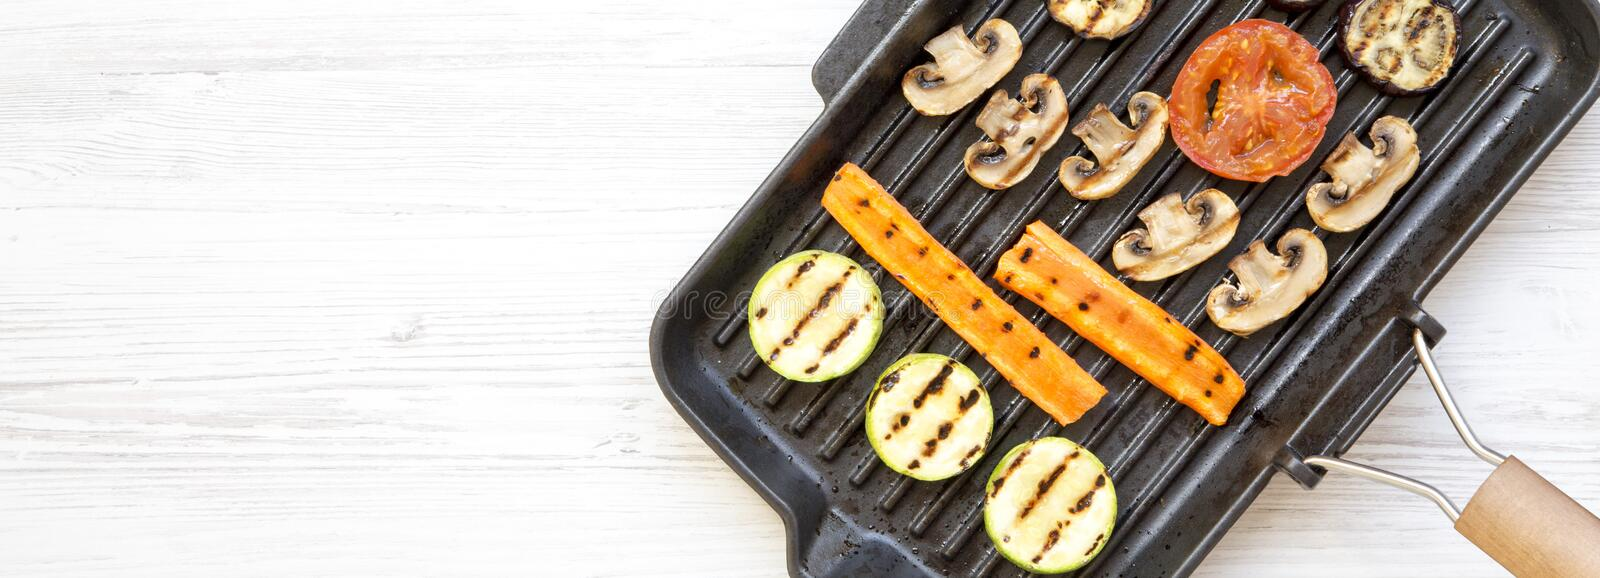 Grilled vegetables in a grilling pan over white wooden background, top view. From above, overhead. Space for text.  royalty free stock photography